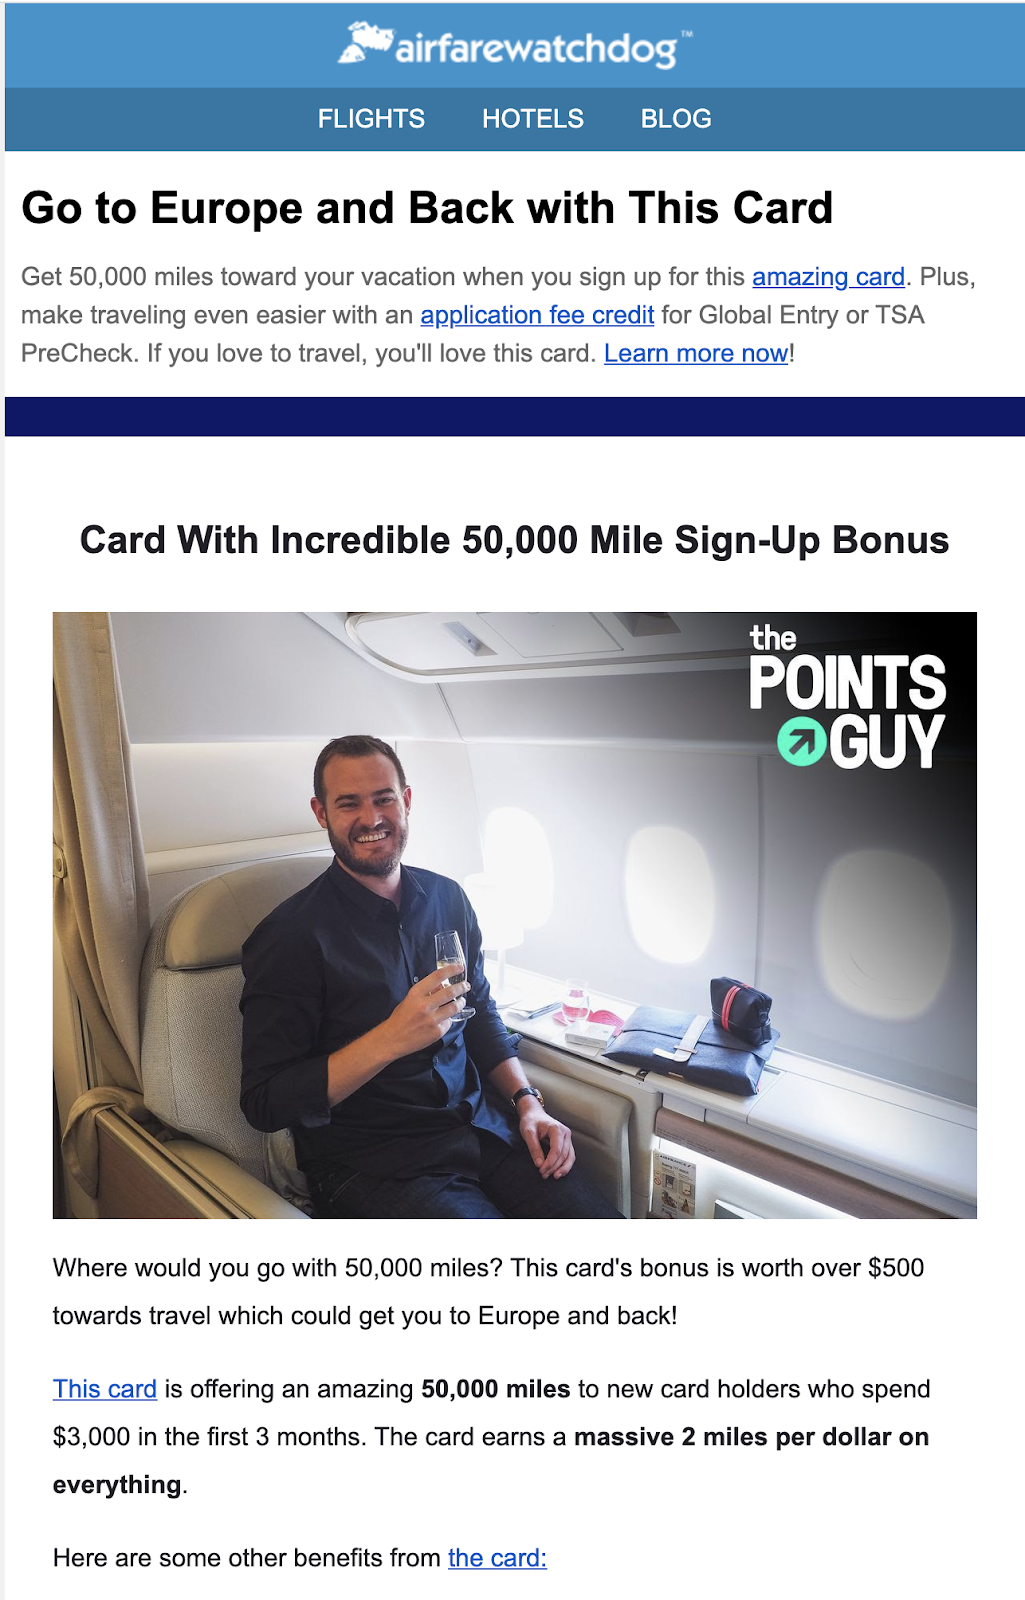 dedicated newsletter send with The Points Guy